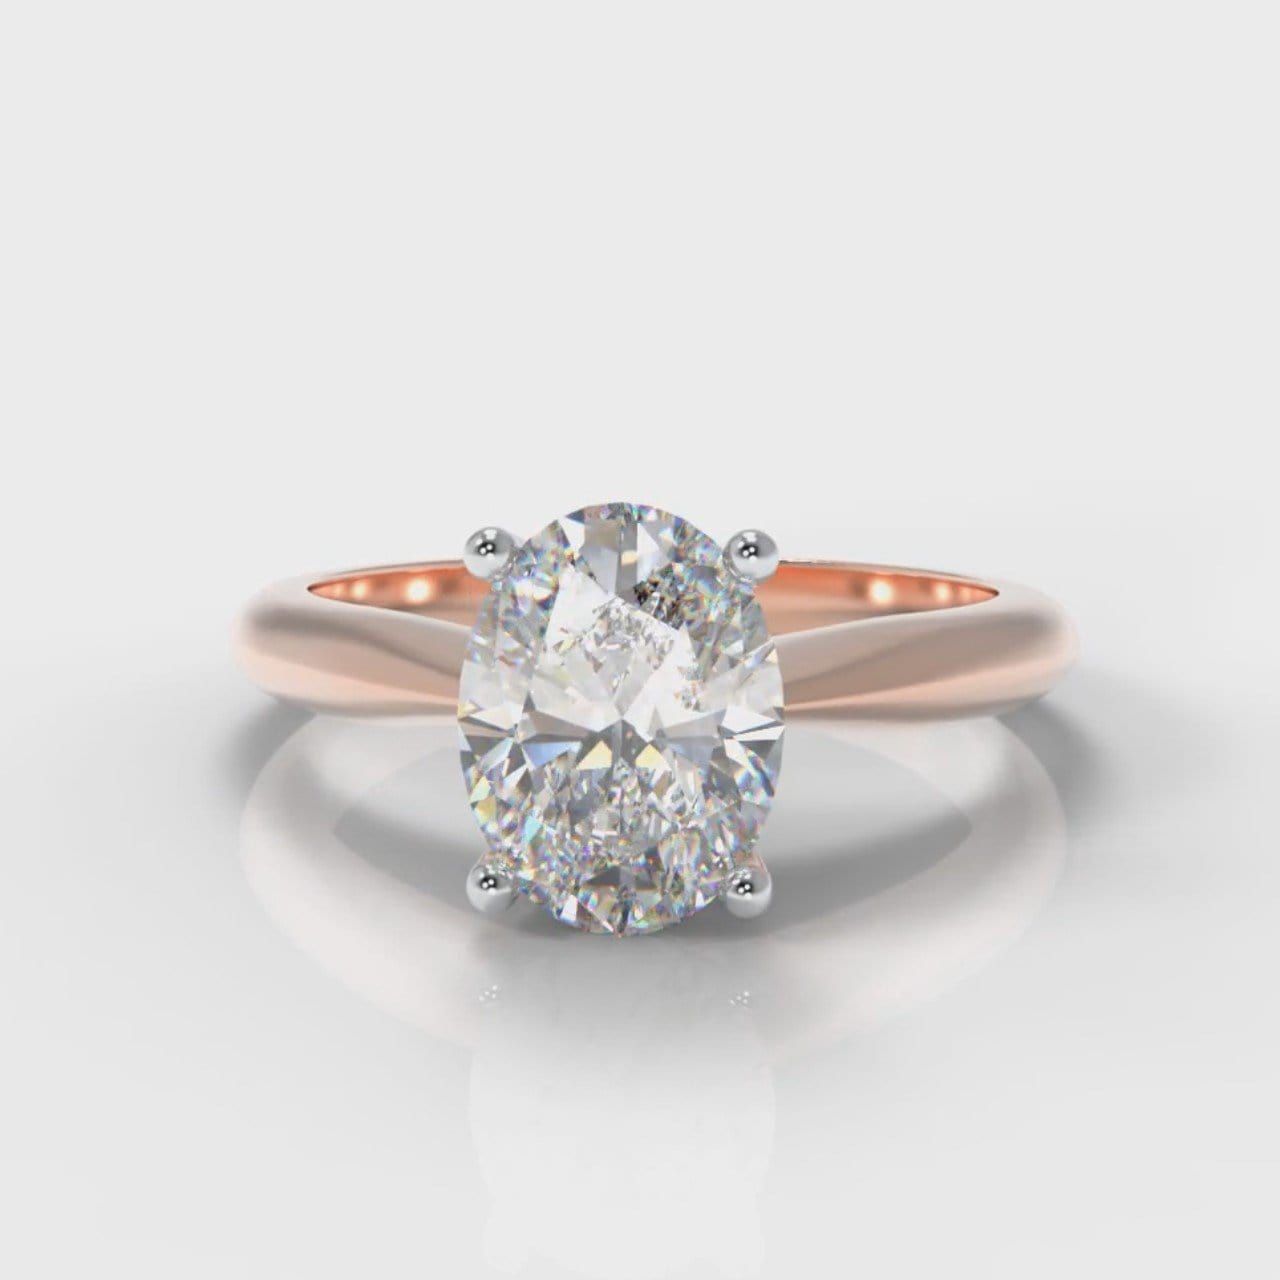 Carrée Solitaire Oval Diamond Engagement Ring - Rose Gold